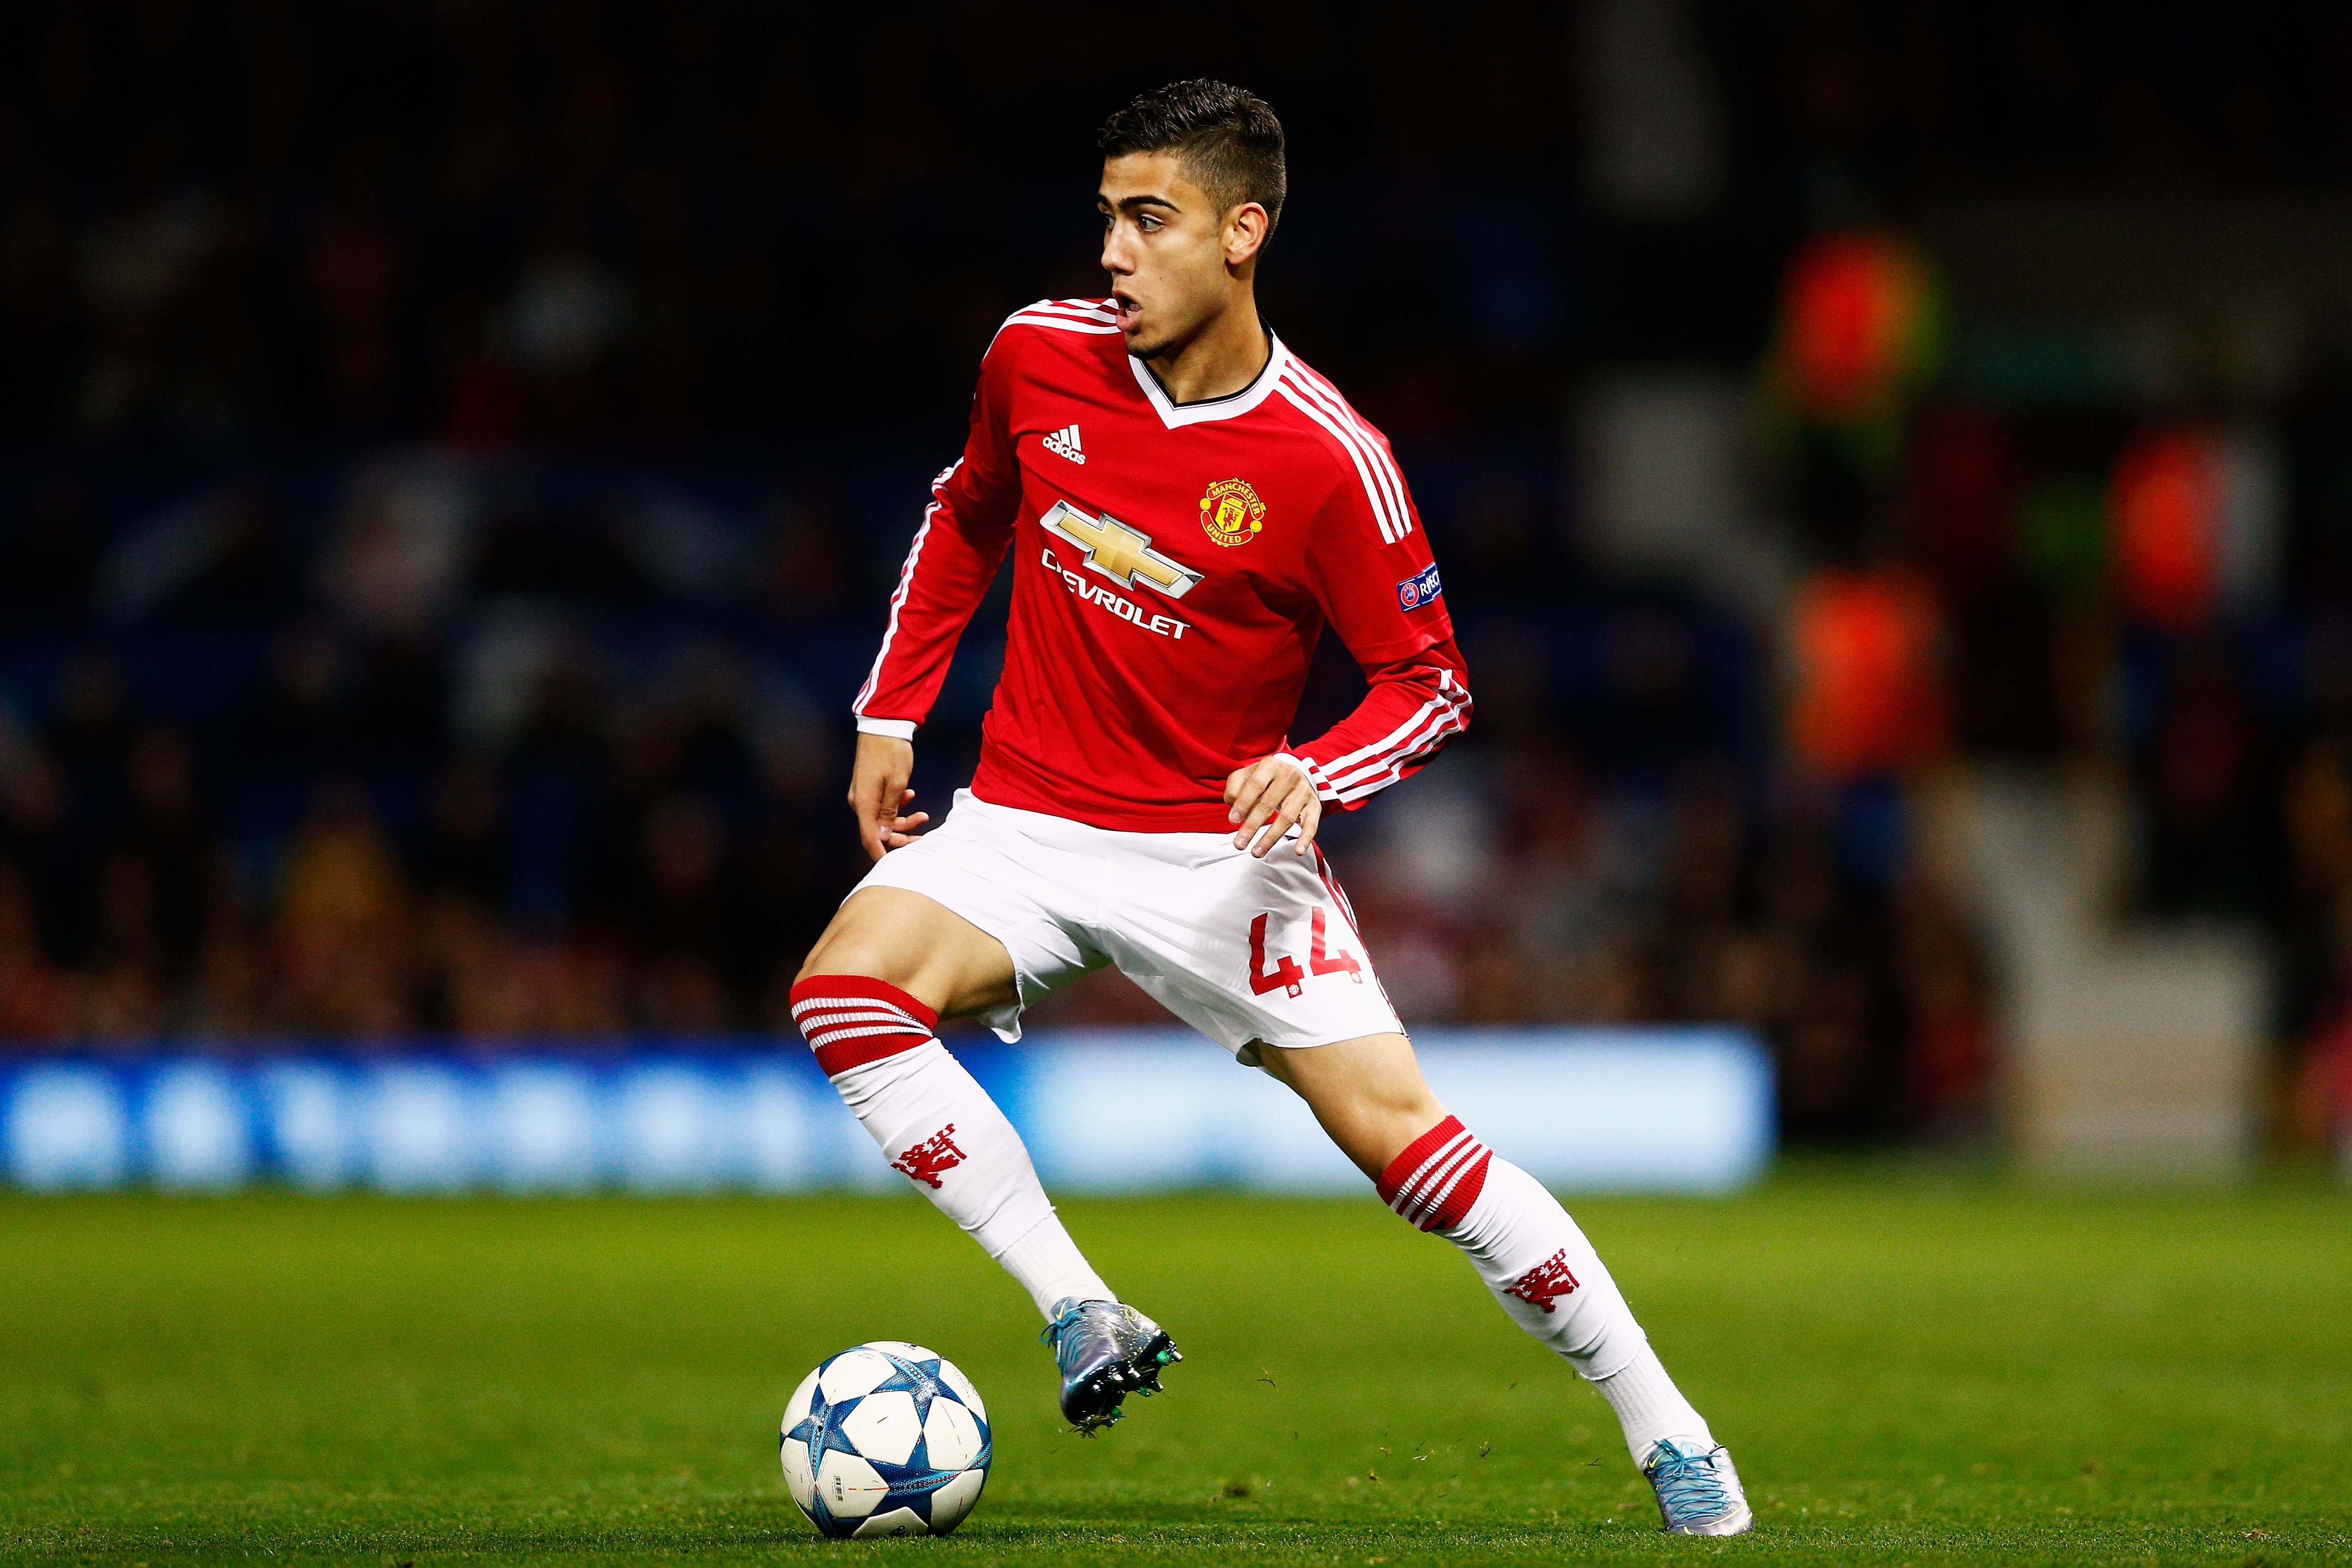 MANCHESTER, ENGLAND - SEPTEMBER 30: Andreas Pereira of Manchester United in action during the UEFA Champions League Group B match between Manchester United FC and VfL Wolfsburg at Old Trafford on September 30, 2015 in Manchester, United Kingdom. (Photo by Dean Mouhtaropoulos/Getty Images)